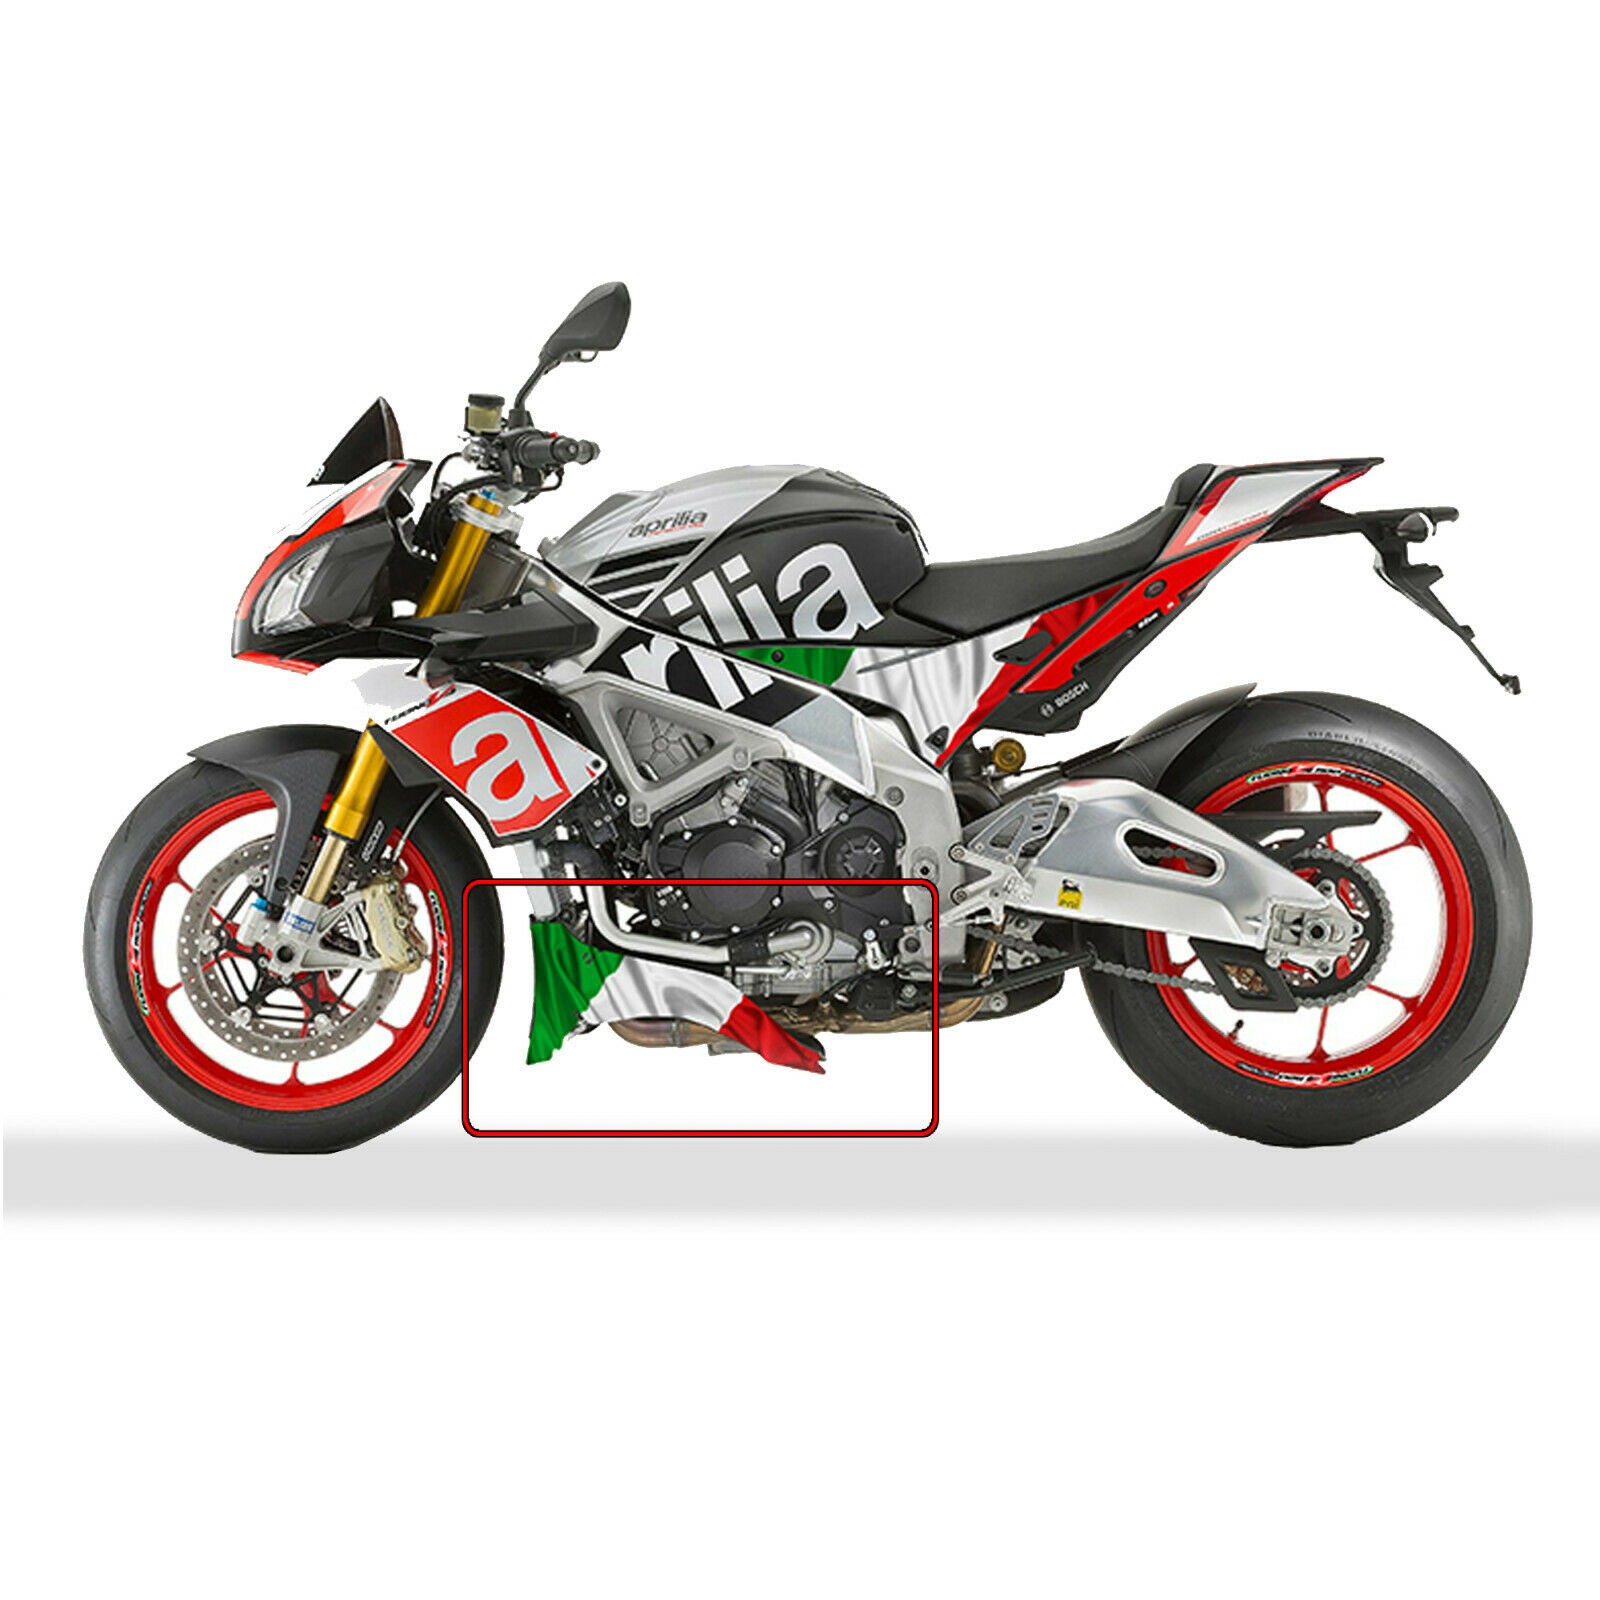 aprilia tuono v4 1100 factory custom italian flag belly. Black Bedroom Furniture Sets. Home Design Ideas